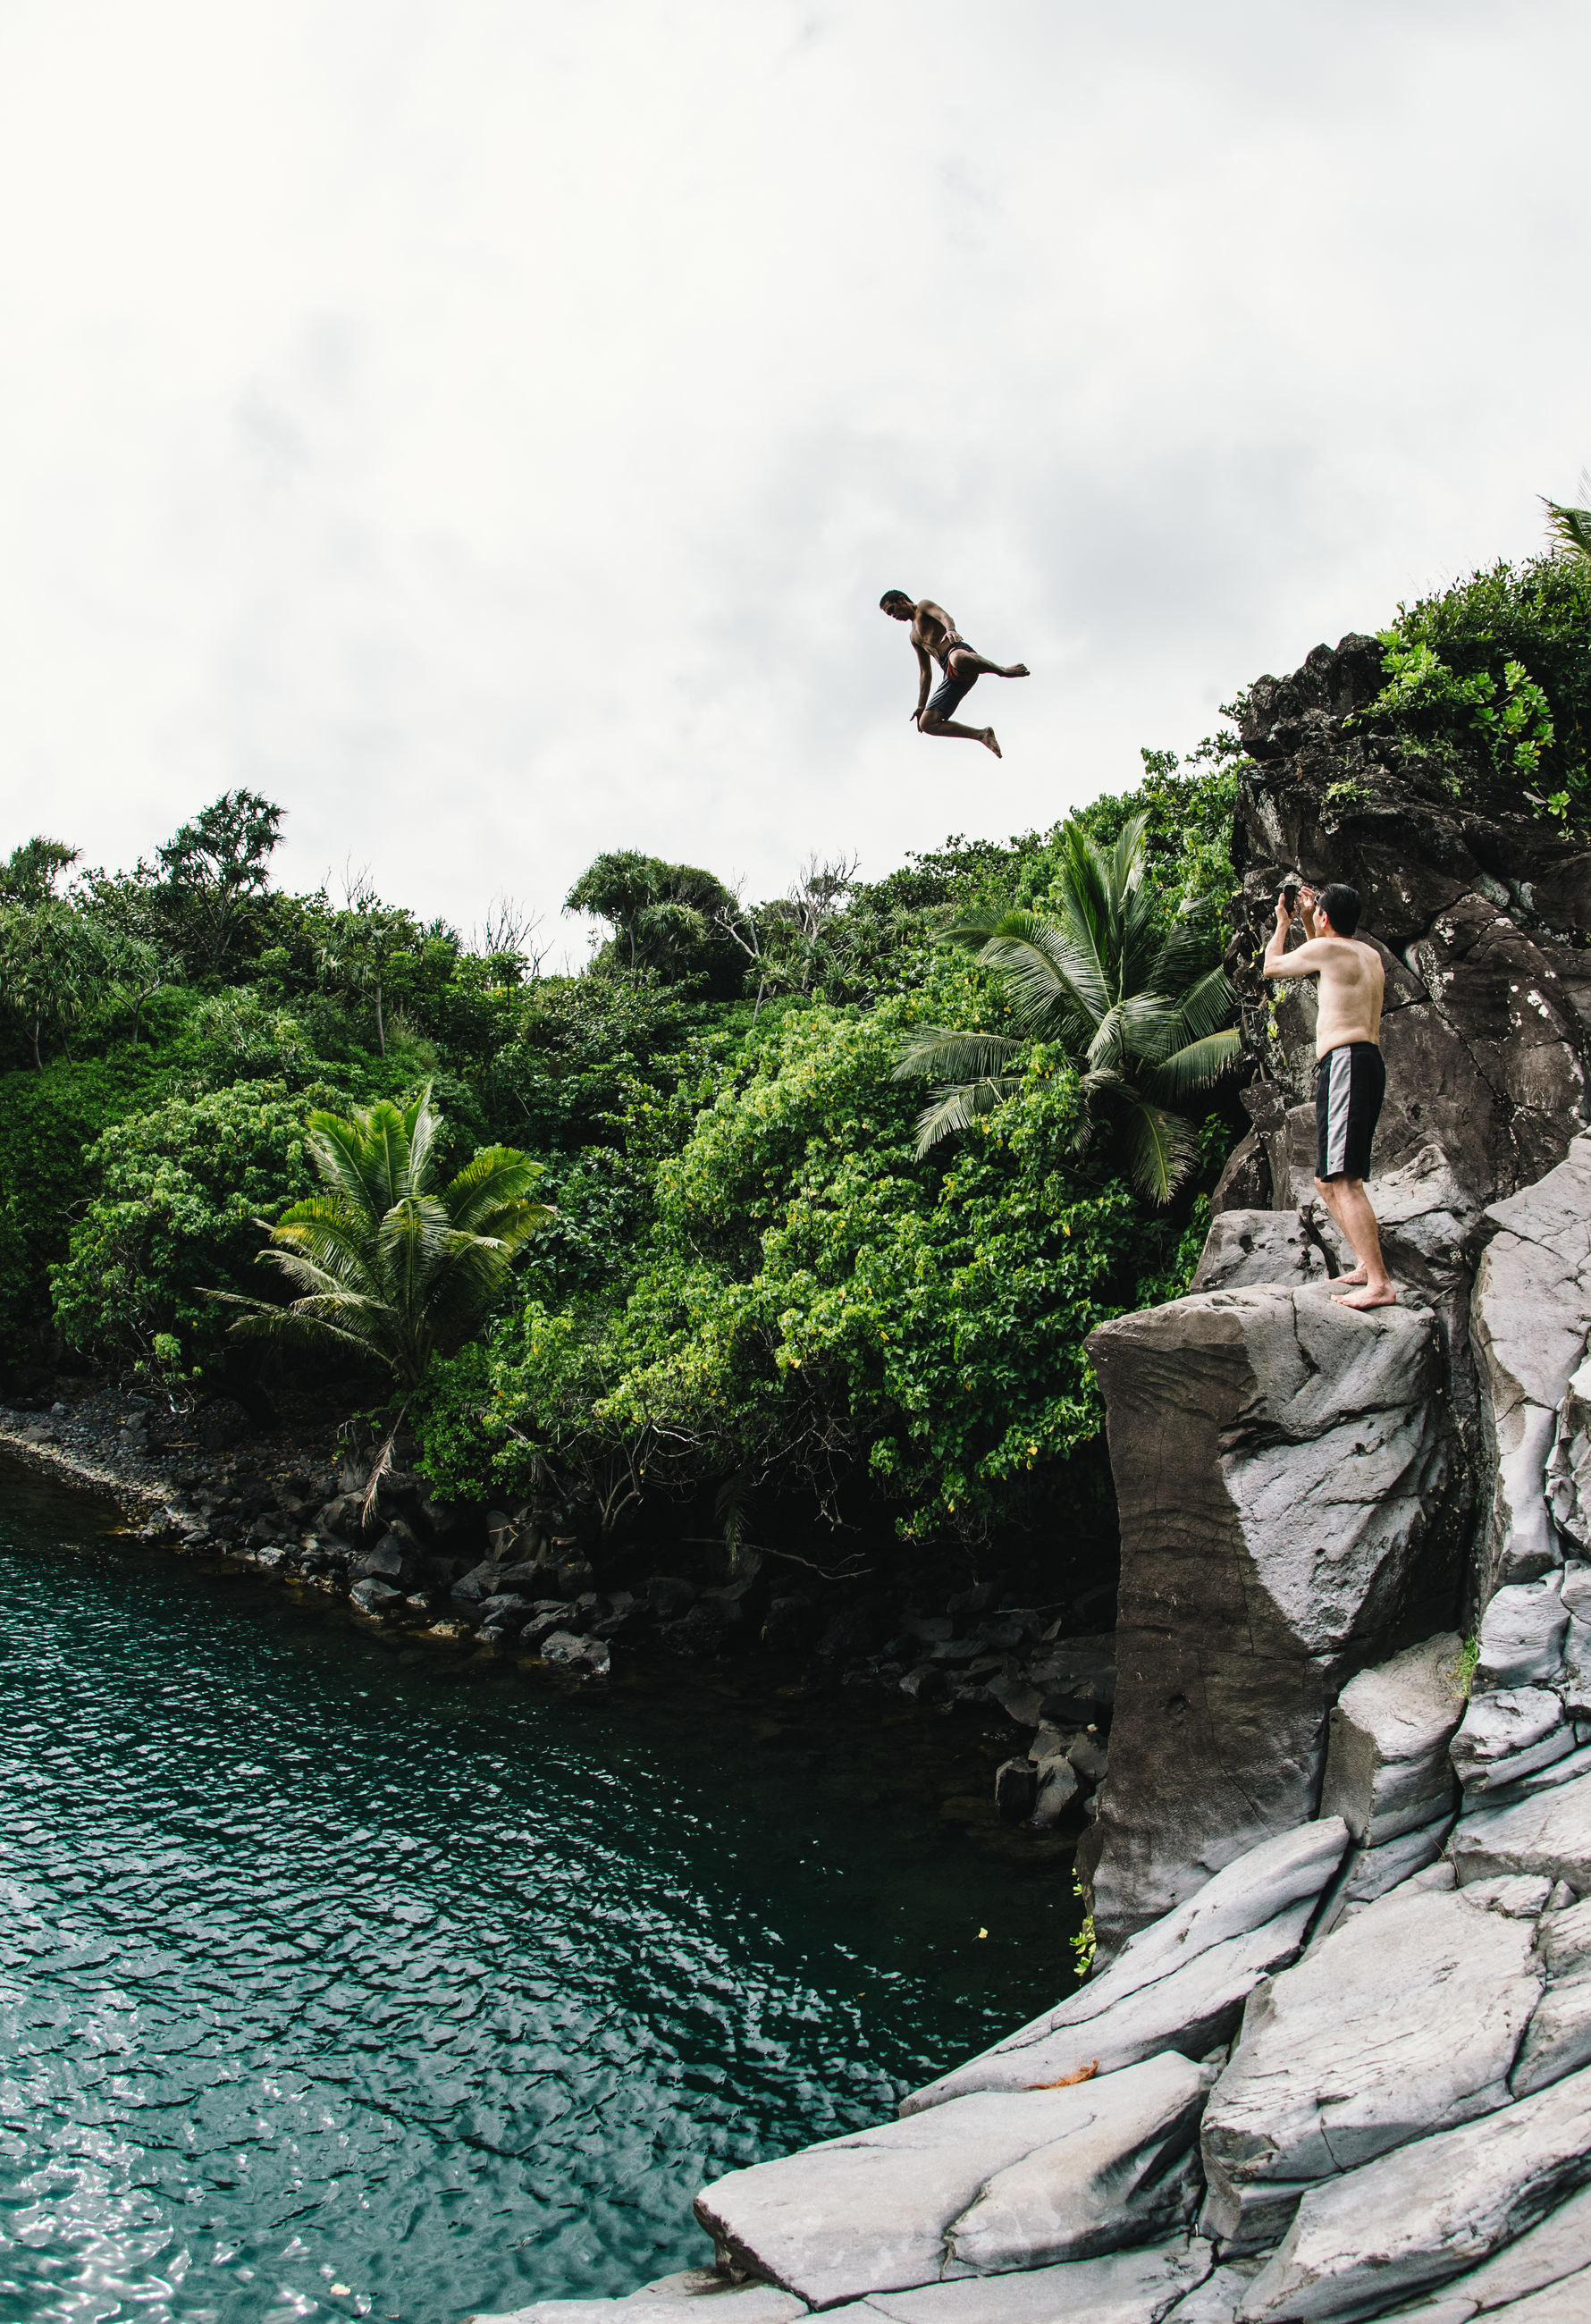 full length, rock - object, day, mid-air, real people, outdoors, tree, men, water, leisure activity, nature, flying, jumping, sky, lifestyles, adventure, low angle view, bird, childhood, beauty in nature, young adult, people